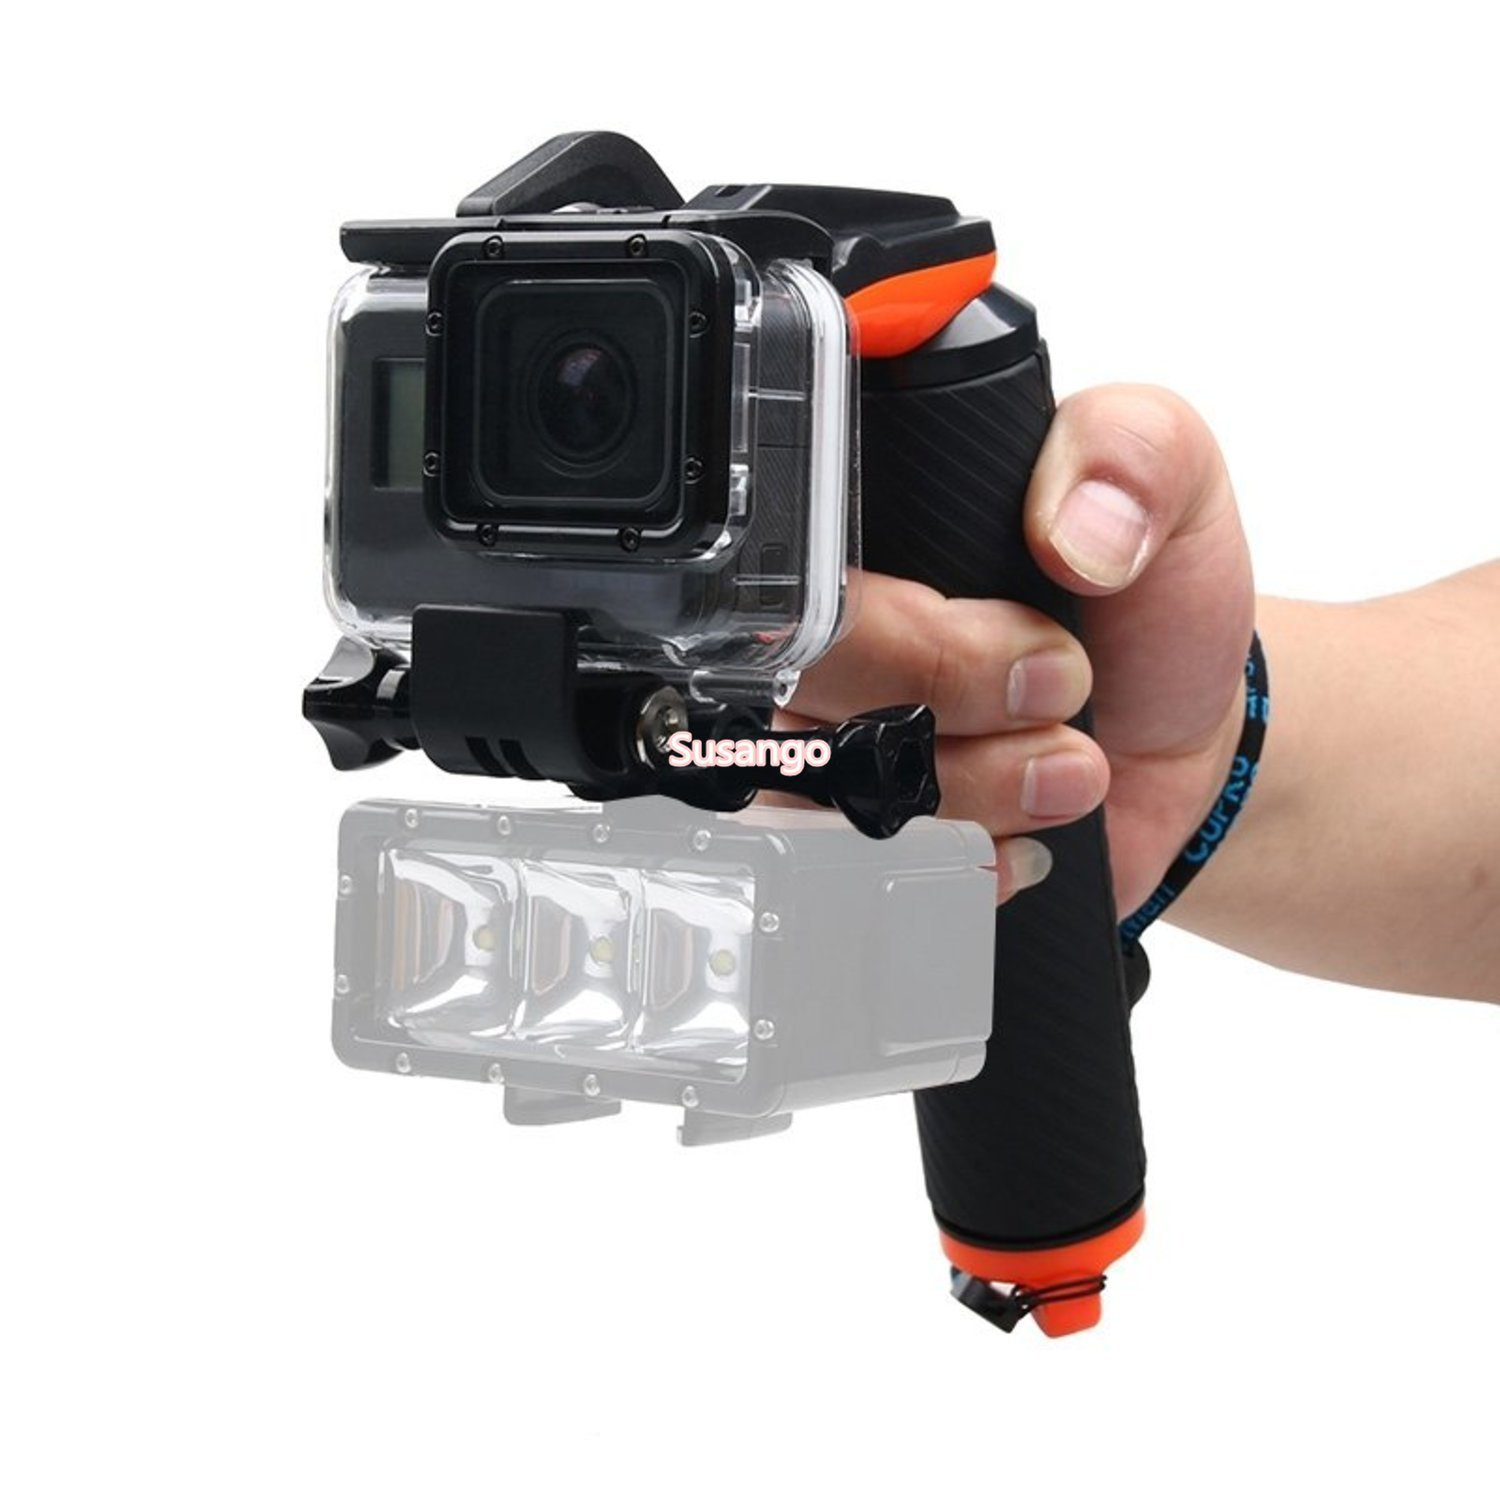 Shutter Trigger Floating Hand Grip GoPro HERO